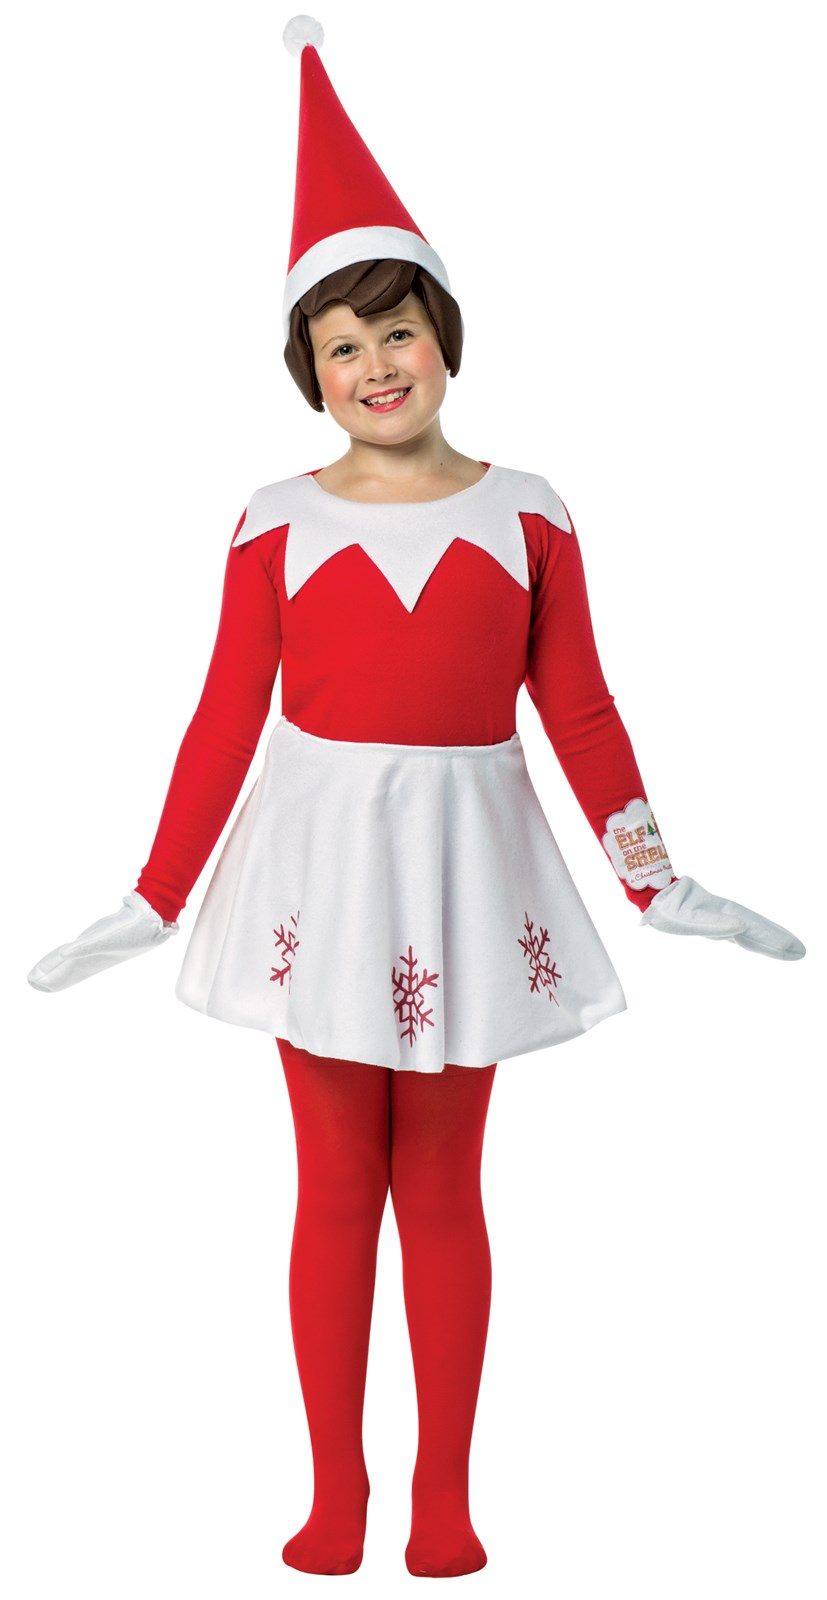 Elf on the Shelf Dress Costume For Girls | BuyCostumes.com